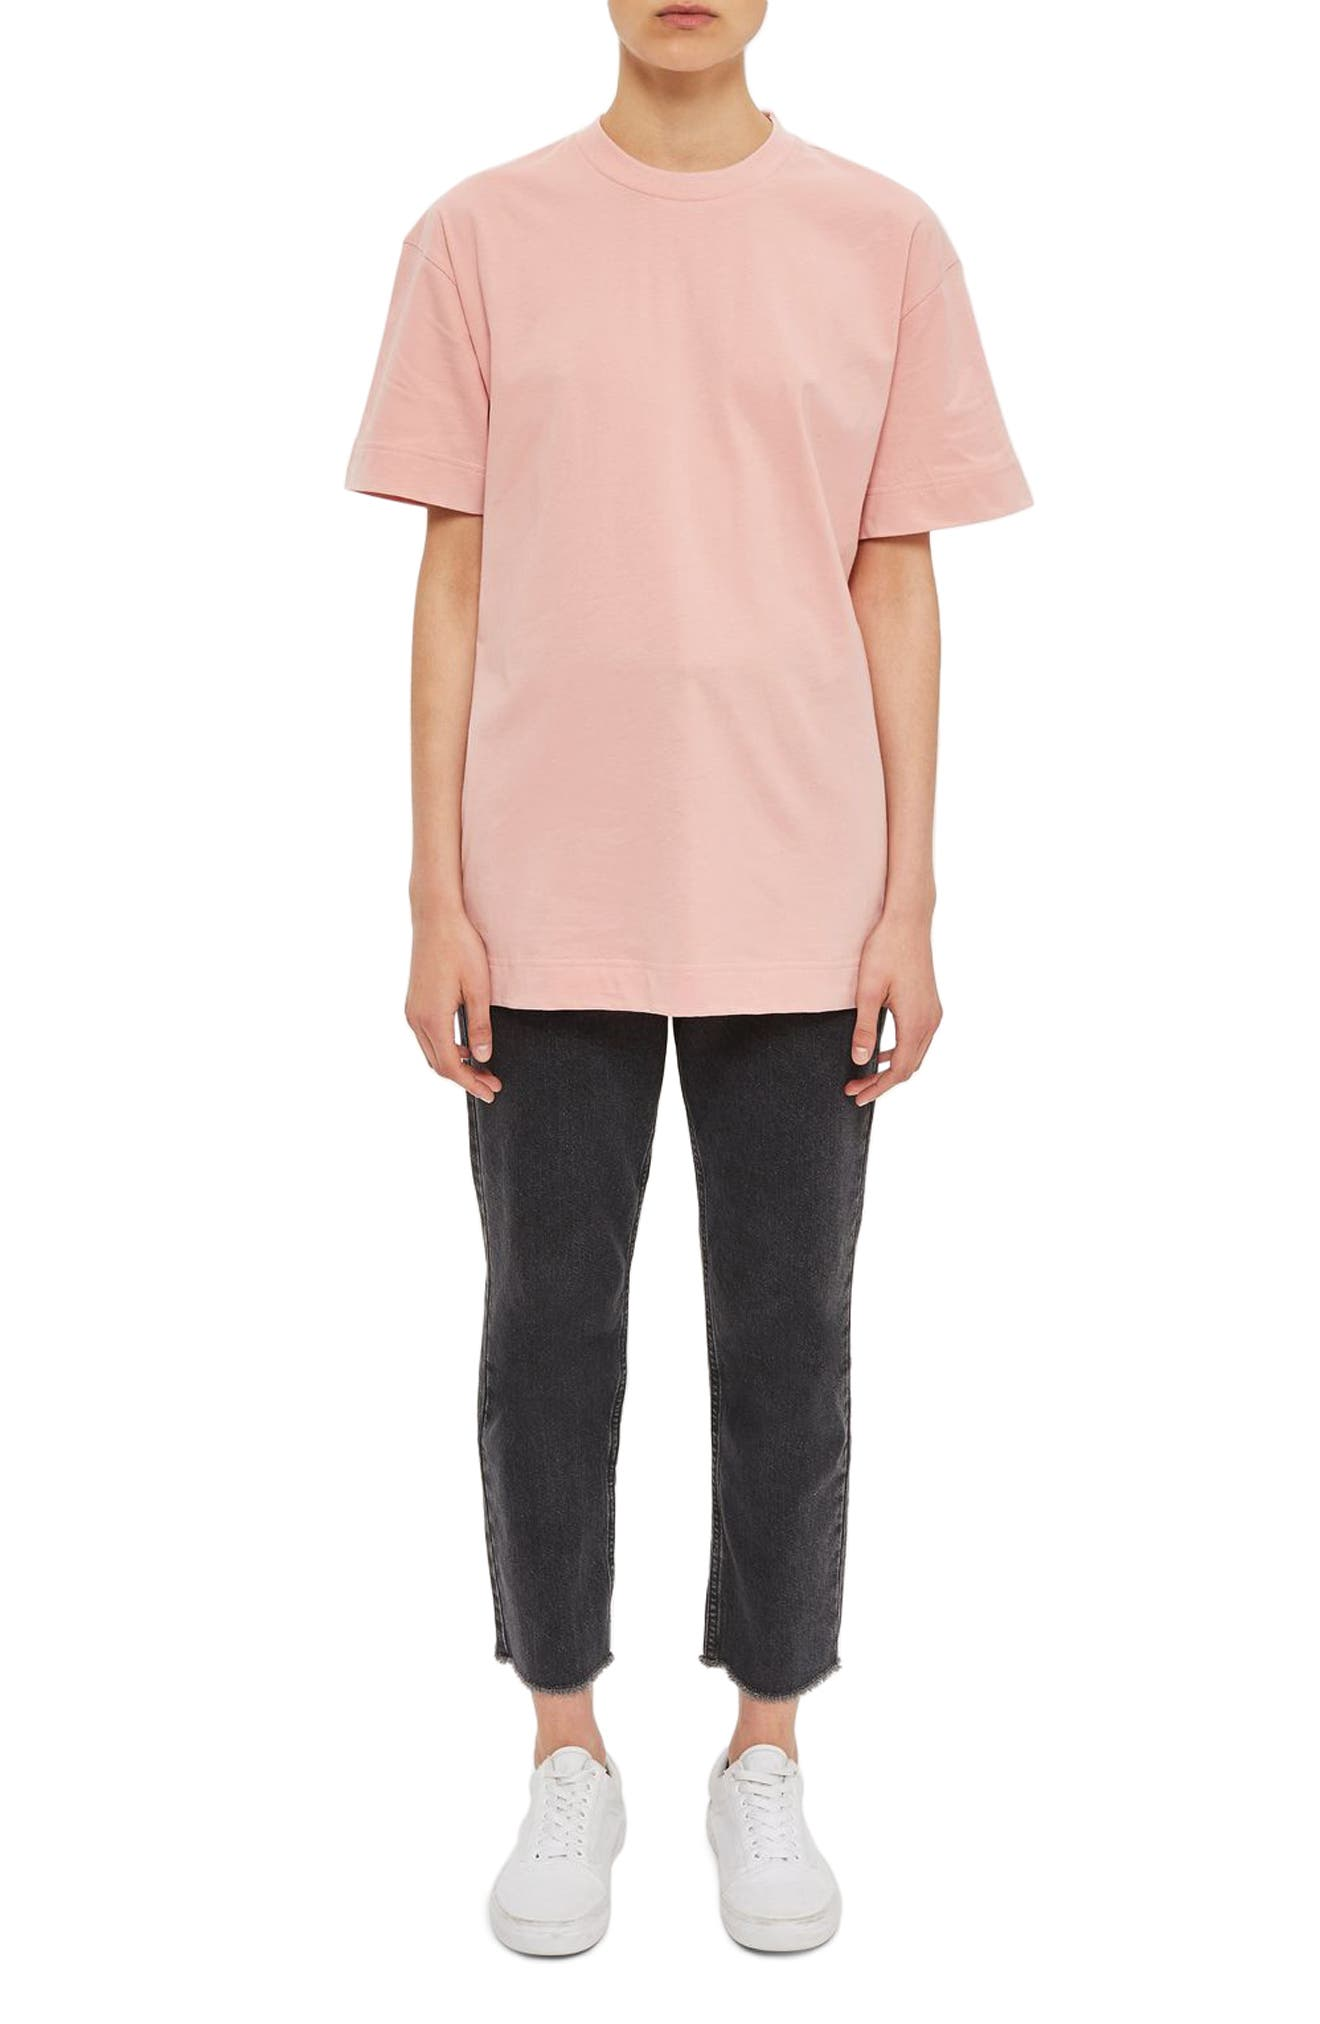 Topshop Boutique Boy T-Shirt